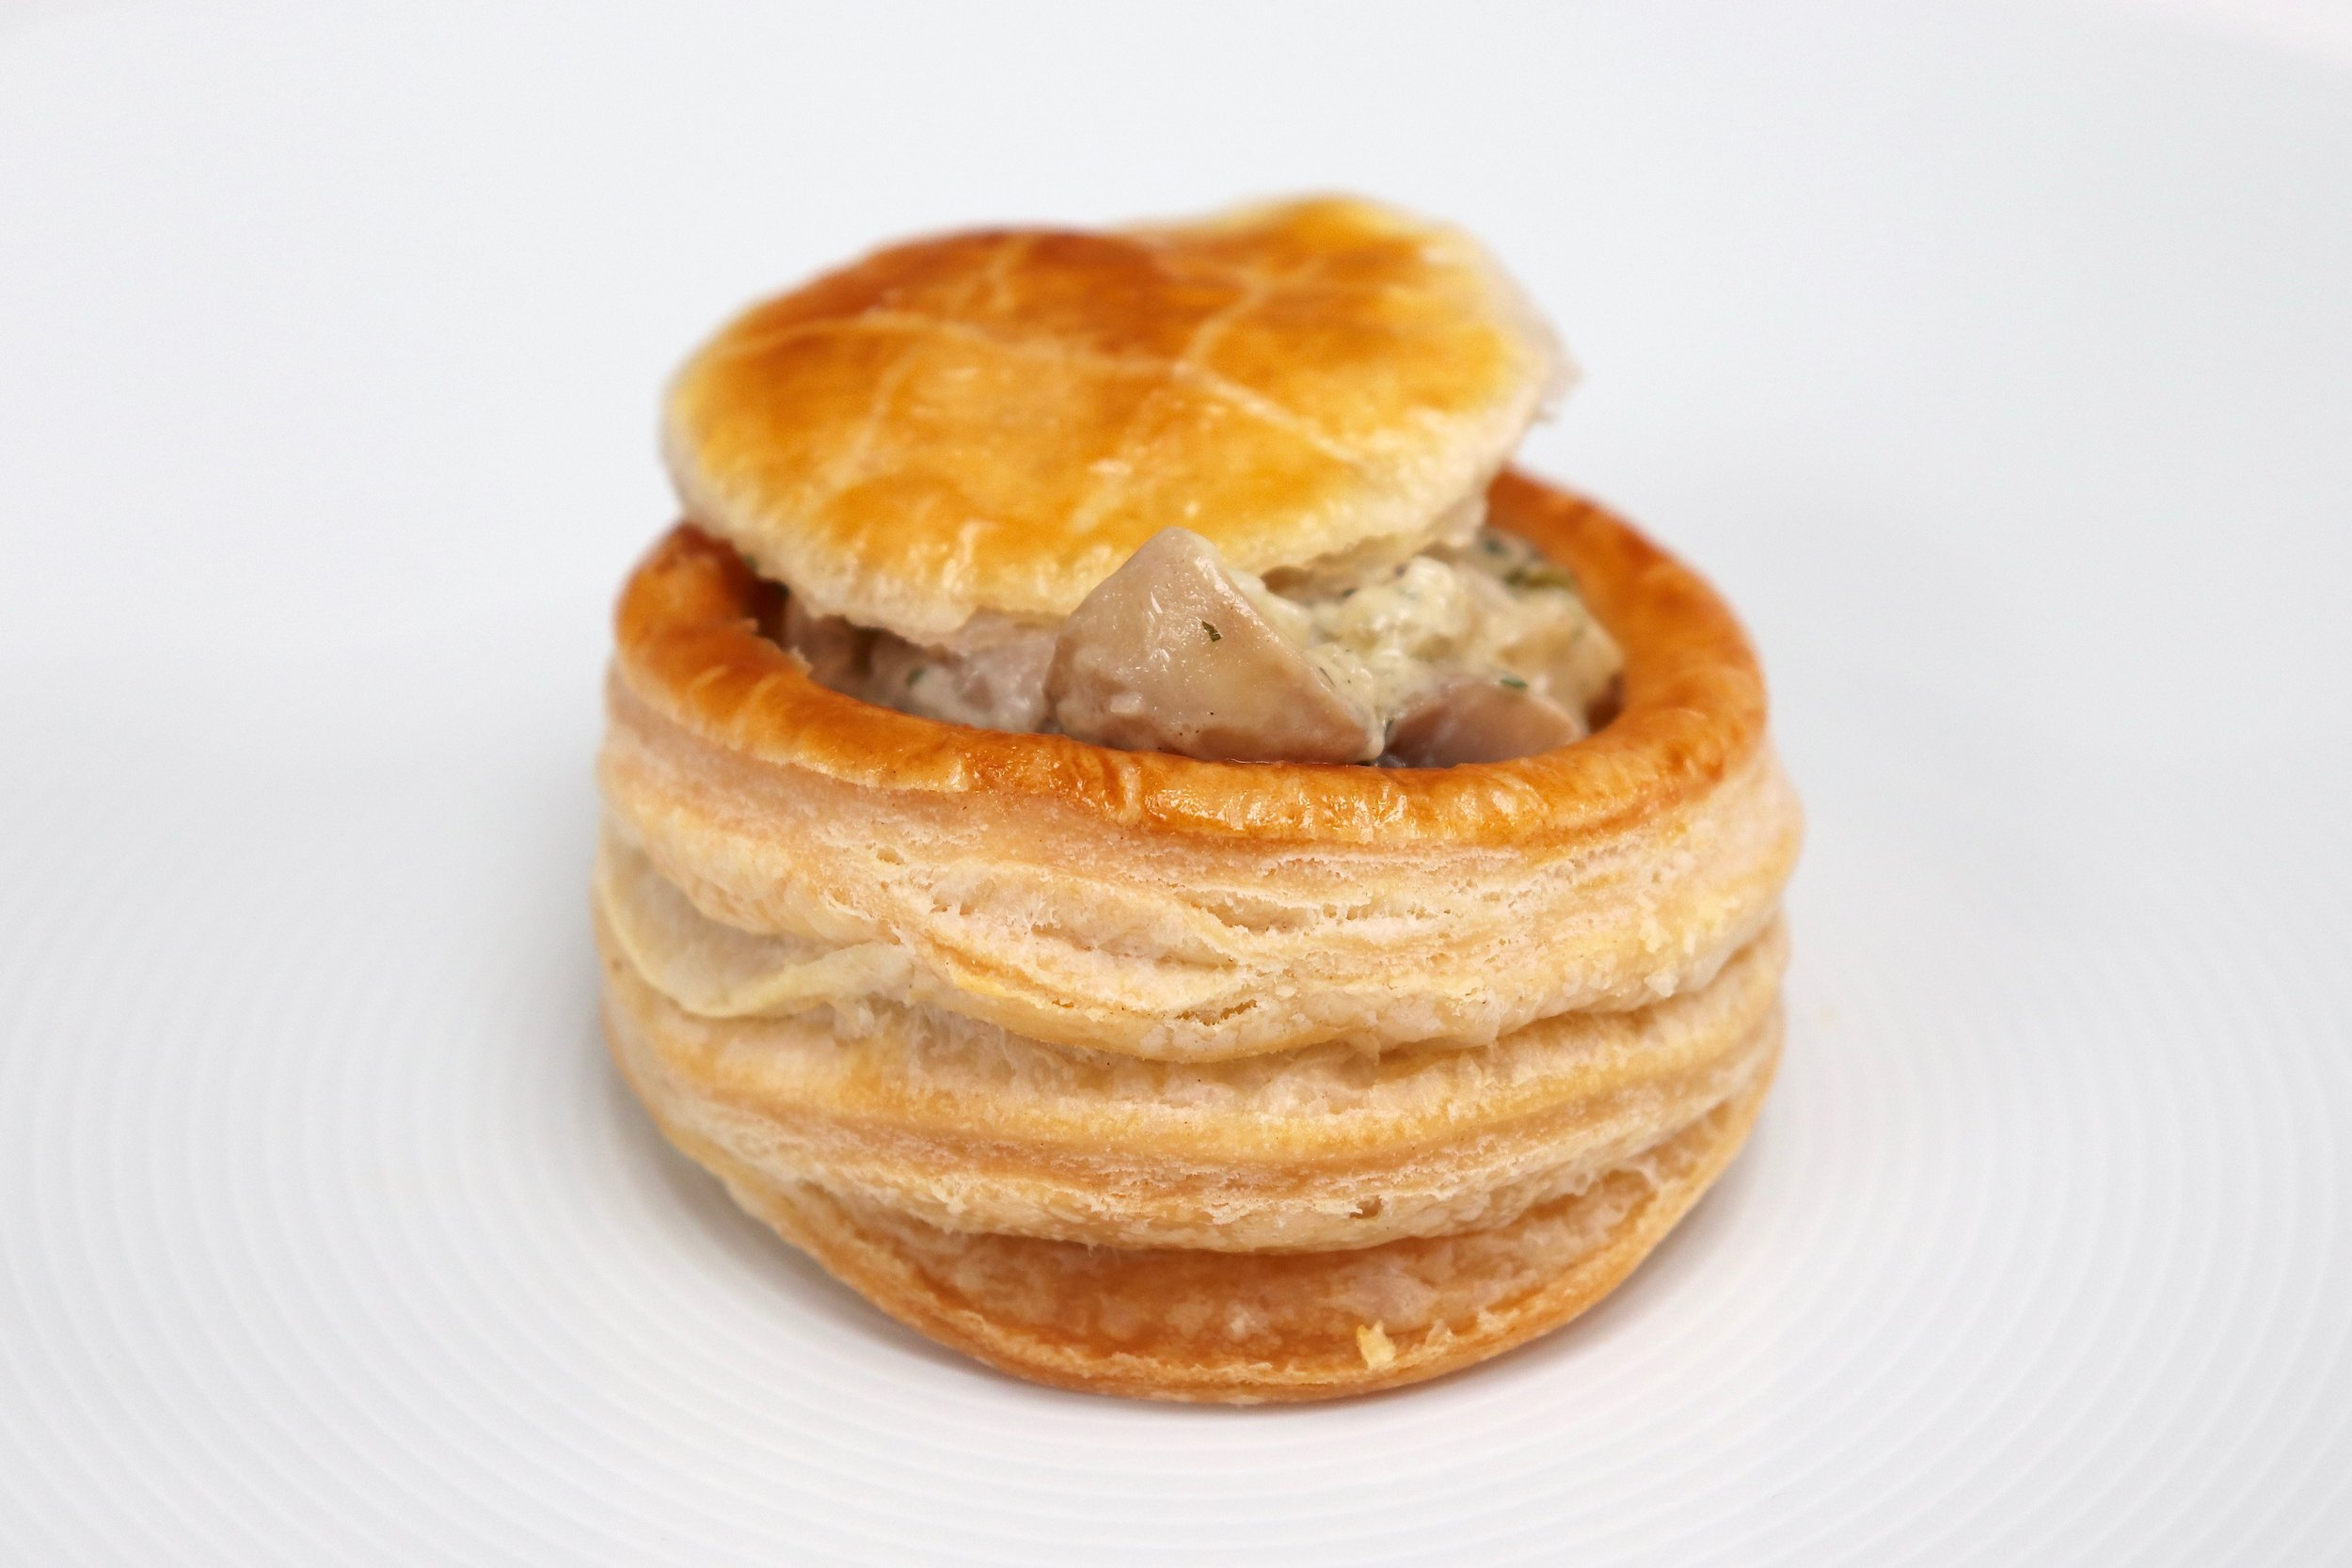 Bouchée filled with herby mushrooms